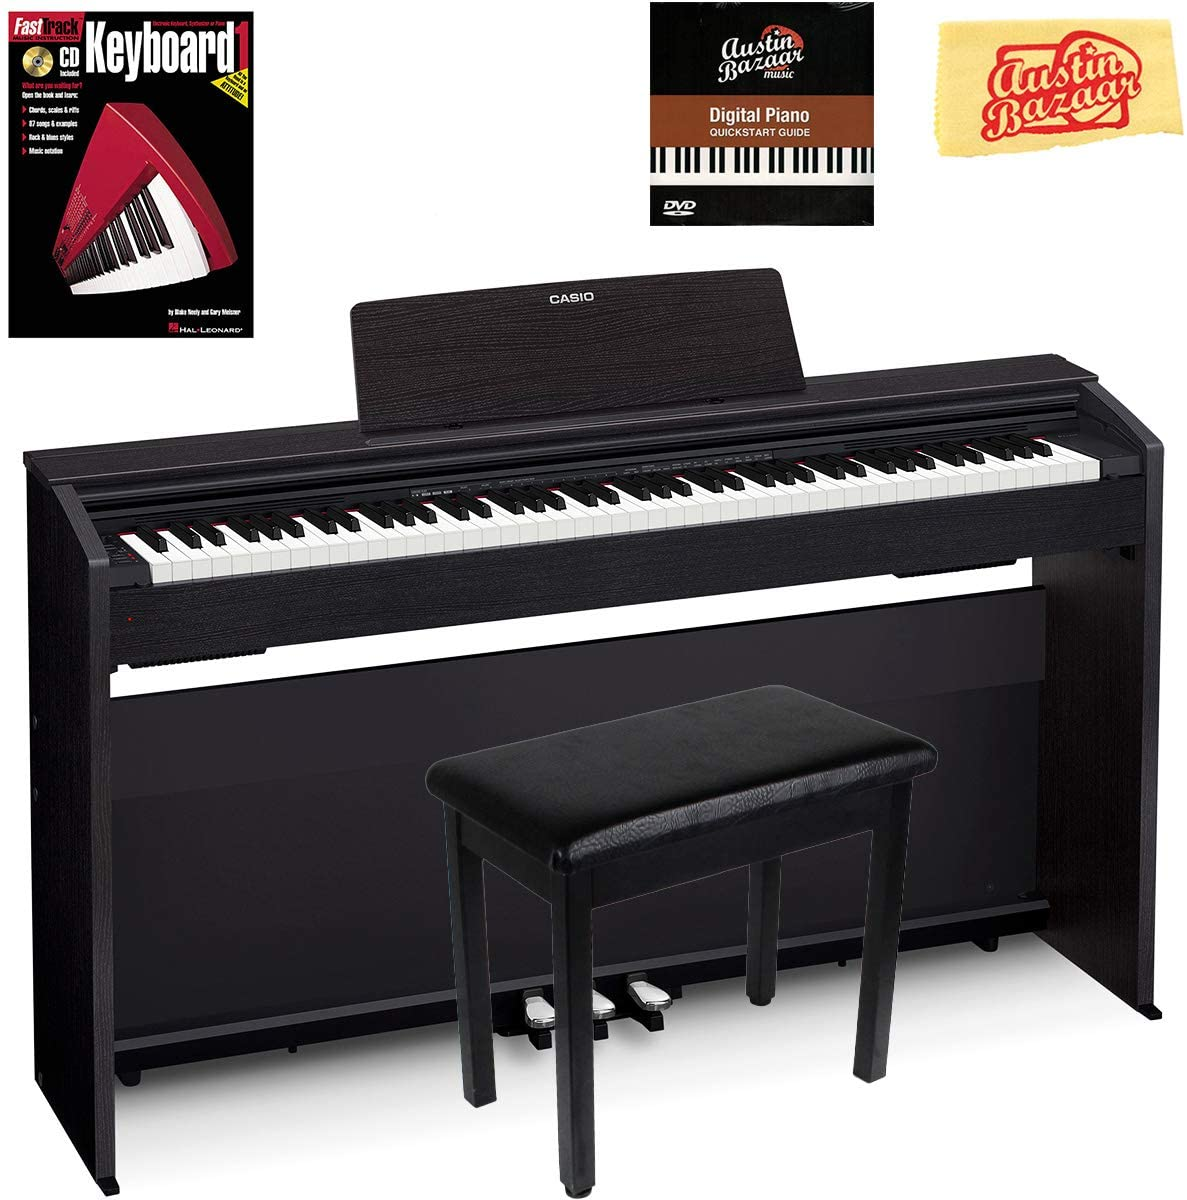 Casio Privia PX-870 Digital Piano - Black Bundle with Furniture Bench